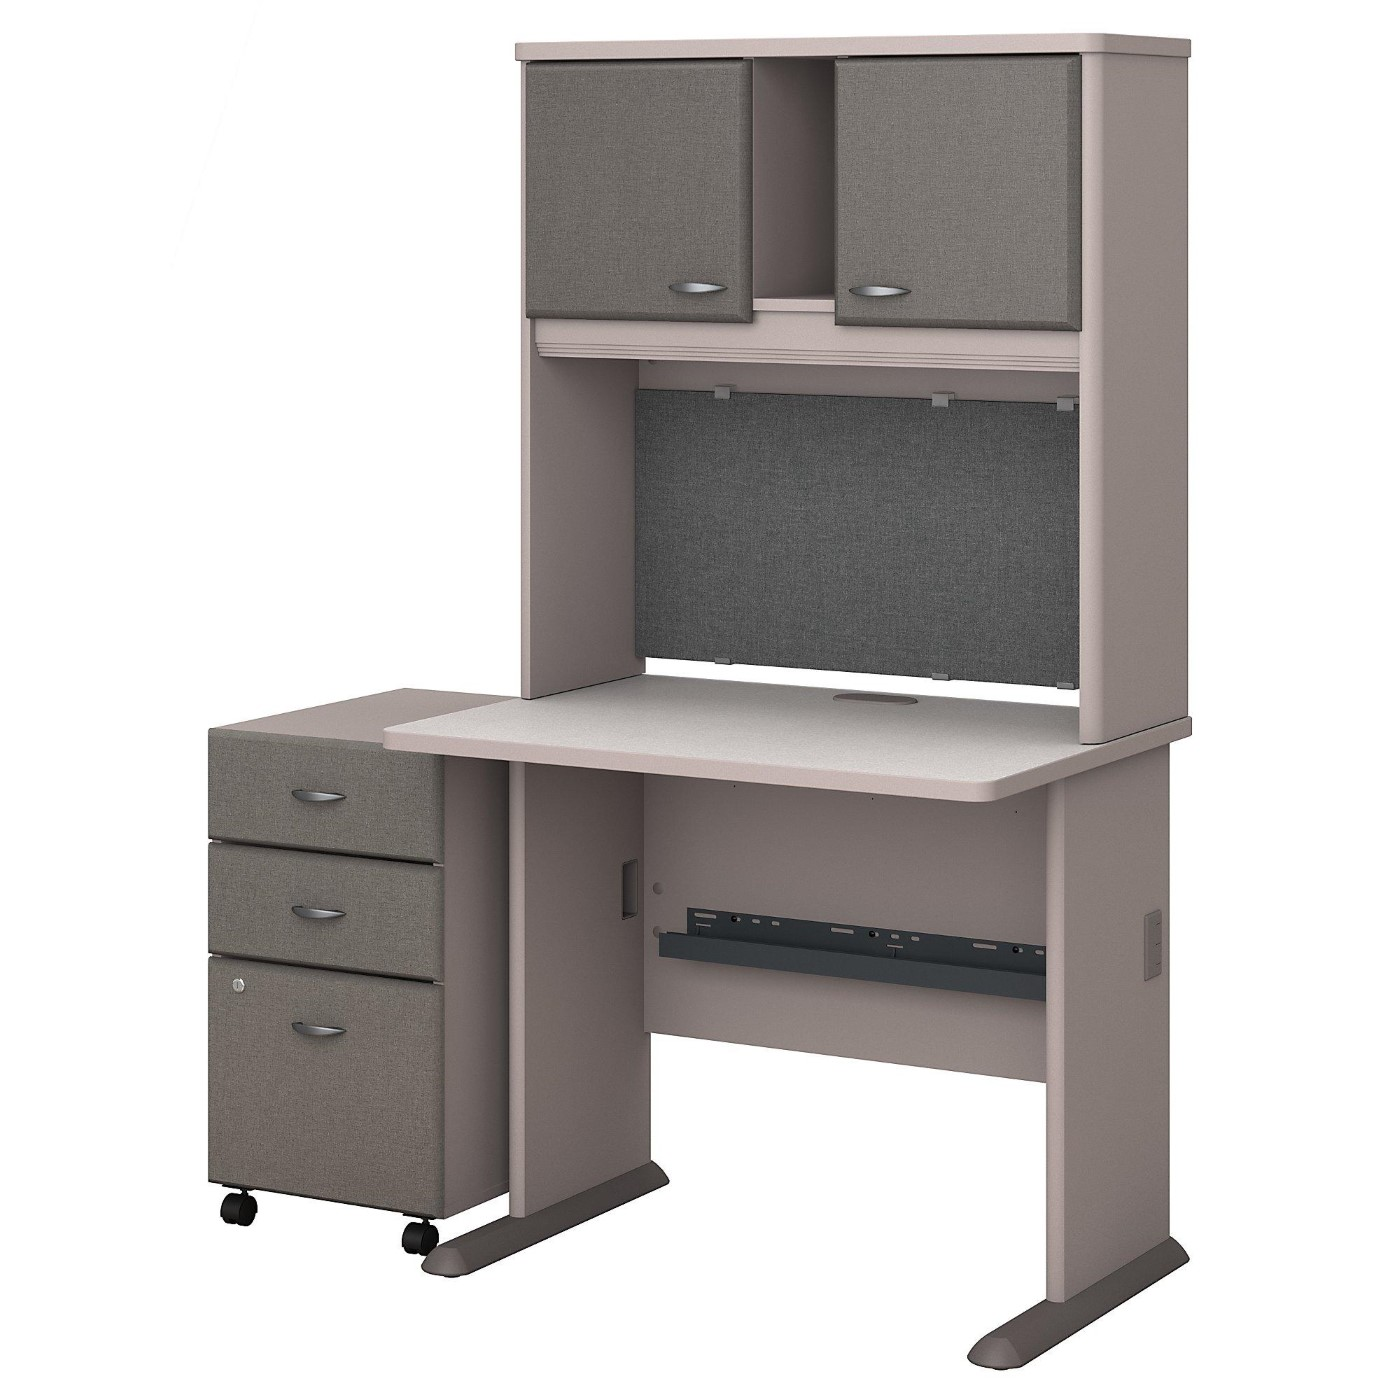 <font color=#c60><b>BUSH BUSINESS FURNITURE SERIES A 36W DESK WITH HUTCH AND MOBILE FILE CABINET. FREE SHIPPING</font></b></font></b>